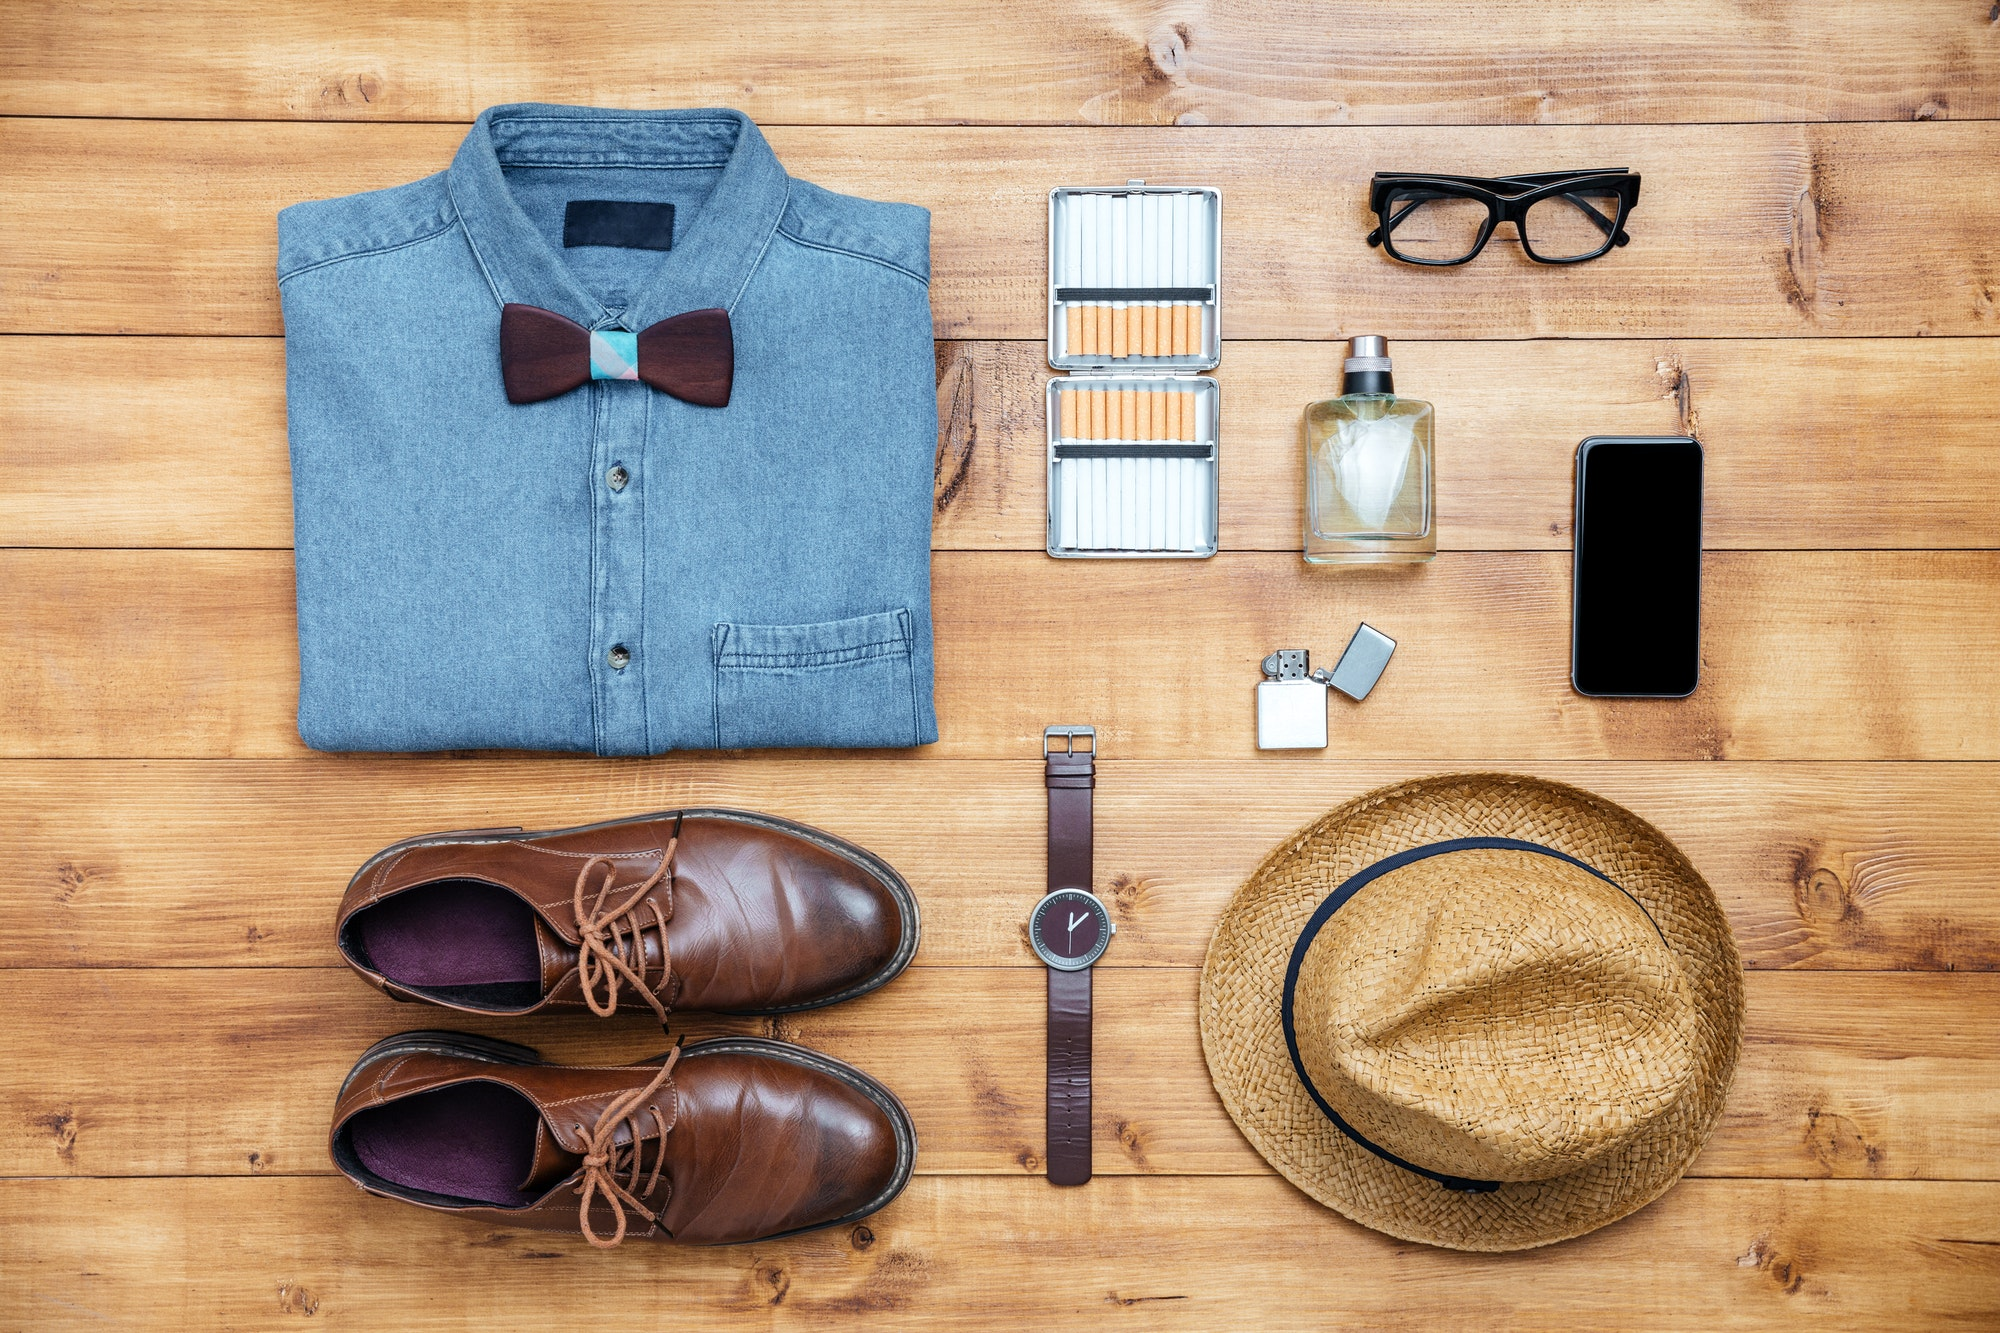 Travel concept shoes, shirt, mobile phone, watch, parfume, eyeglasses, hat